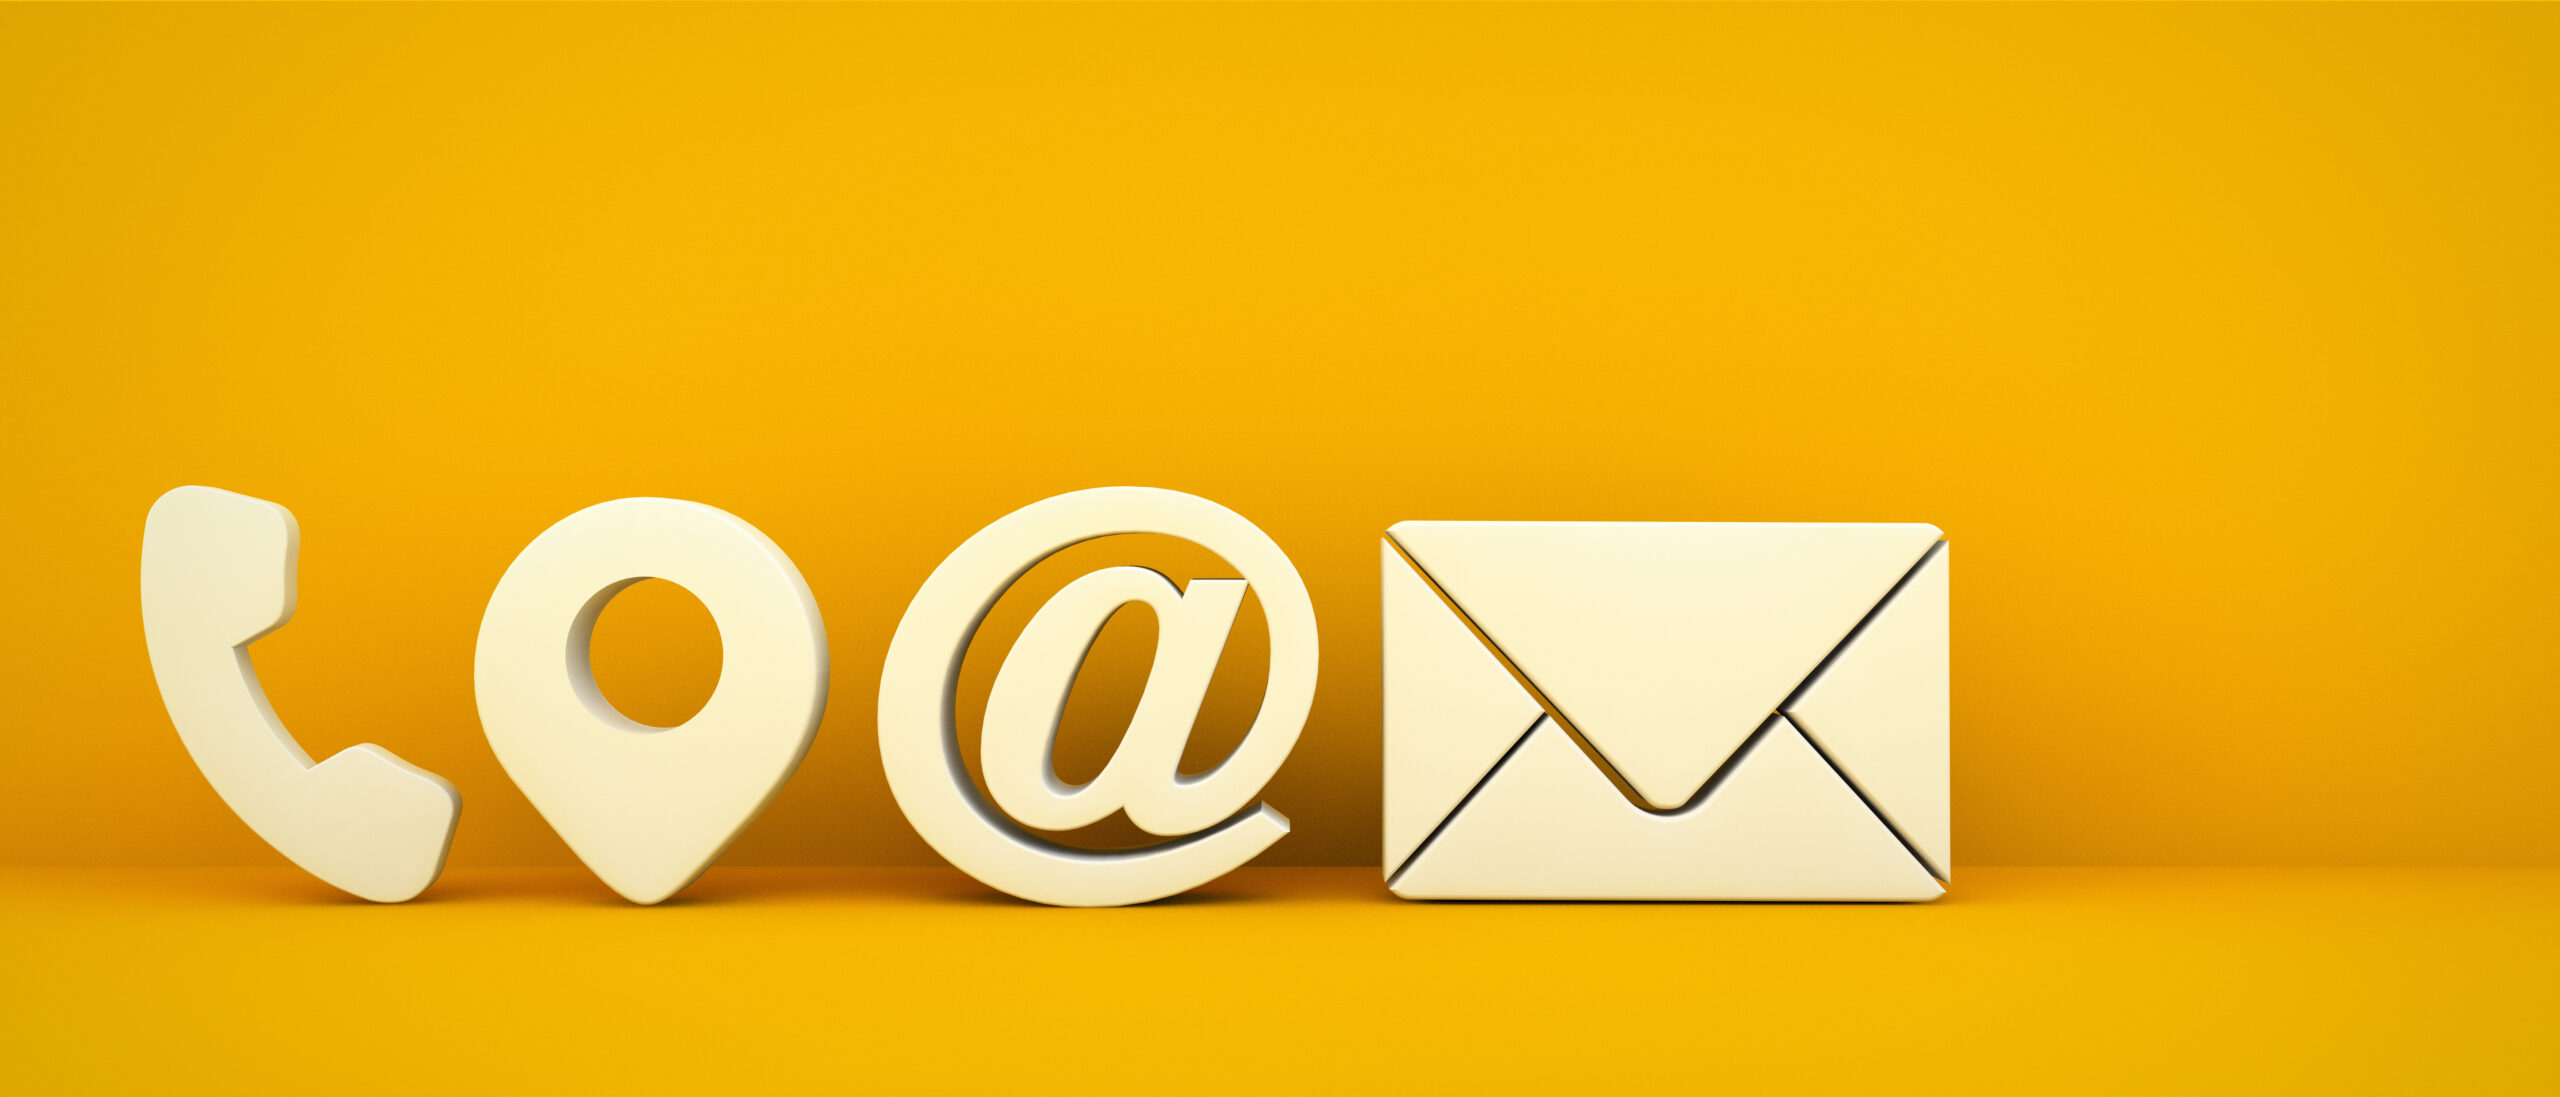 Business contact icons on yellow background 3d rendering